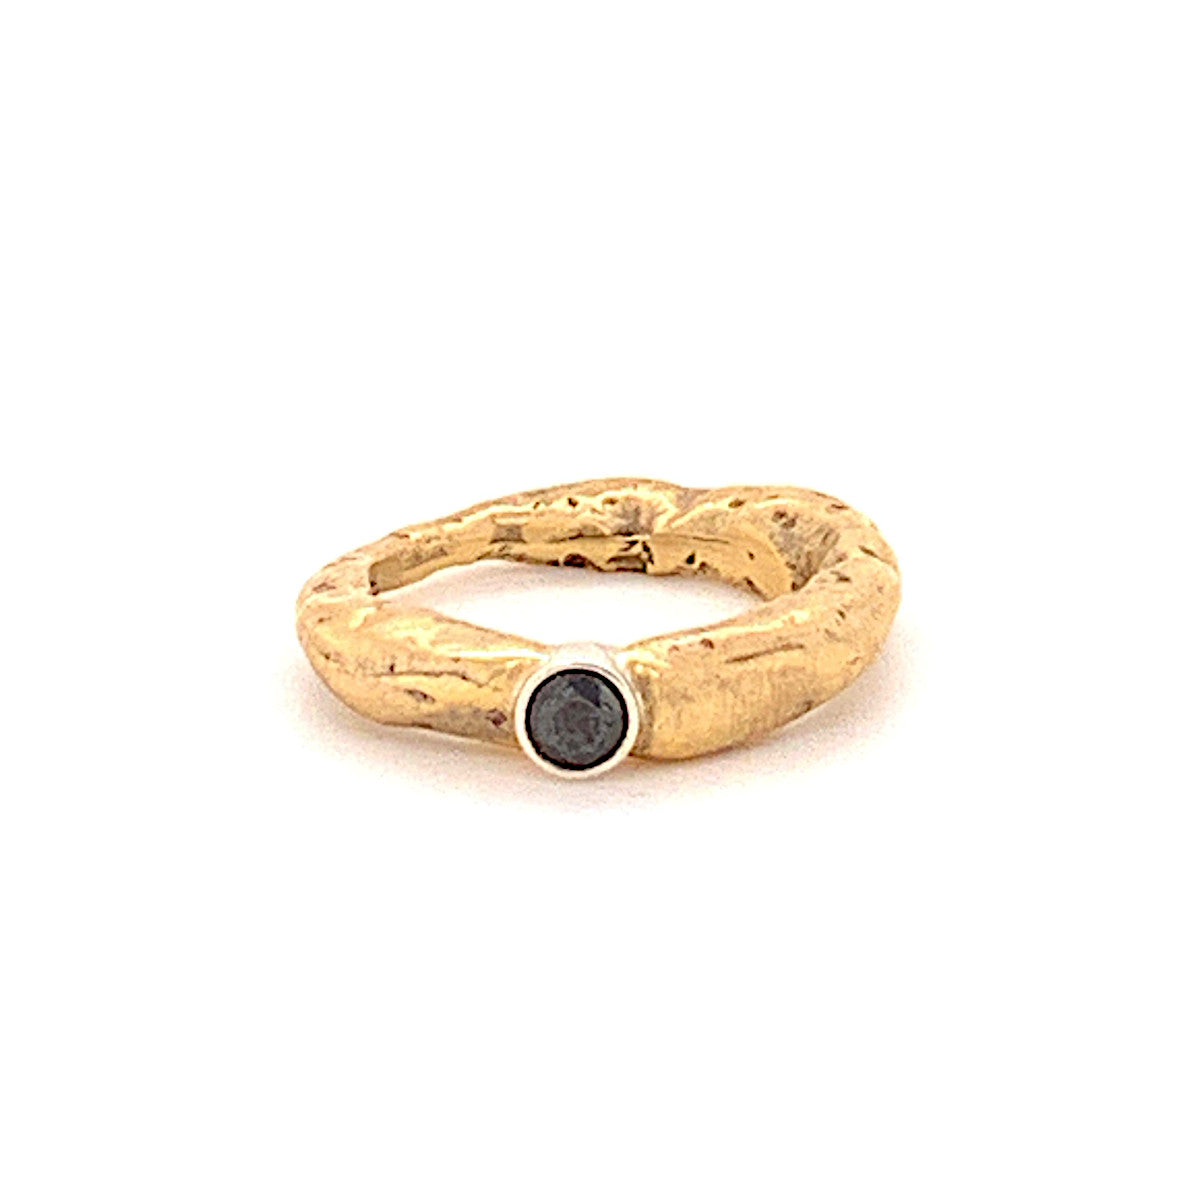 18k Gold Stone Ring with Black Diamond